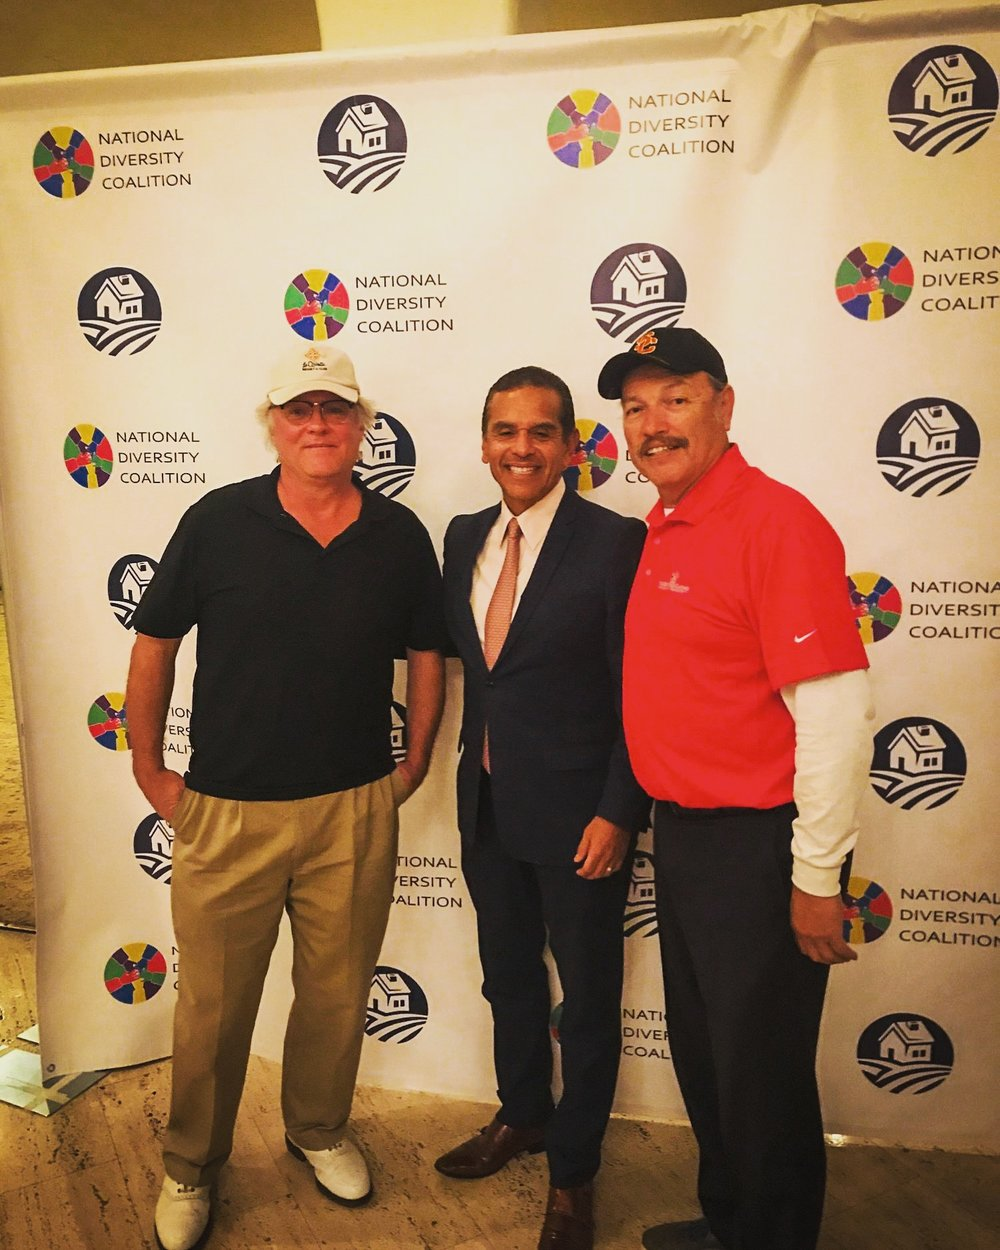 Tony with former LA City Mayor Antonio Villaraigosa and Ken LaBlanc at the National Diversity Coalition fundraiser.